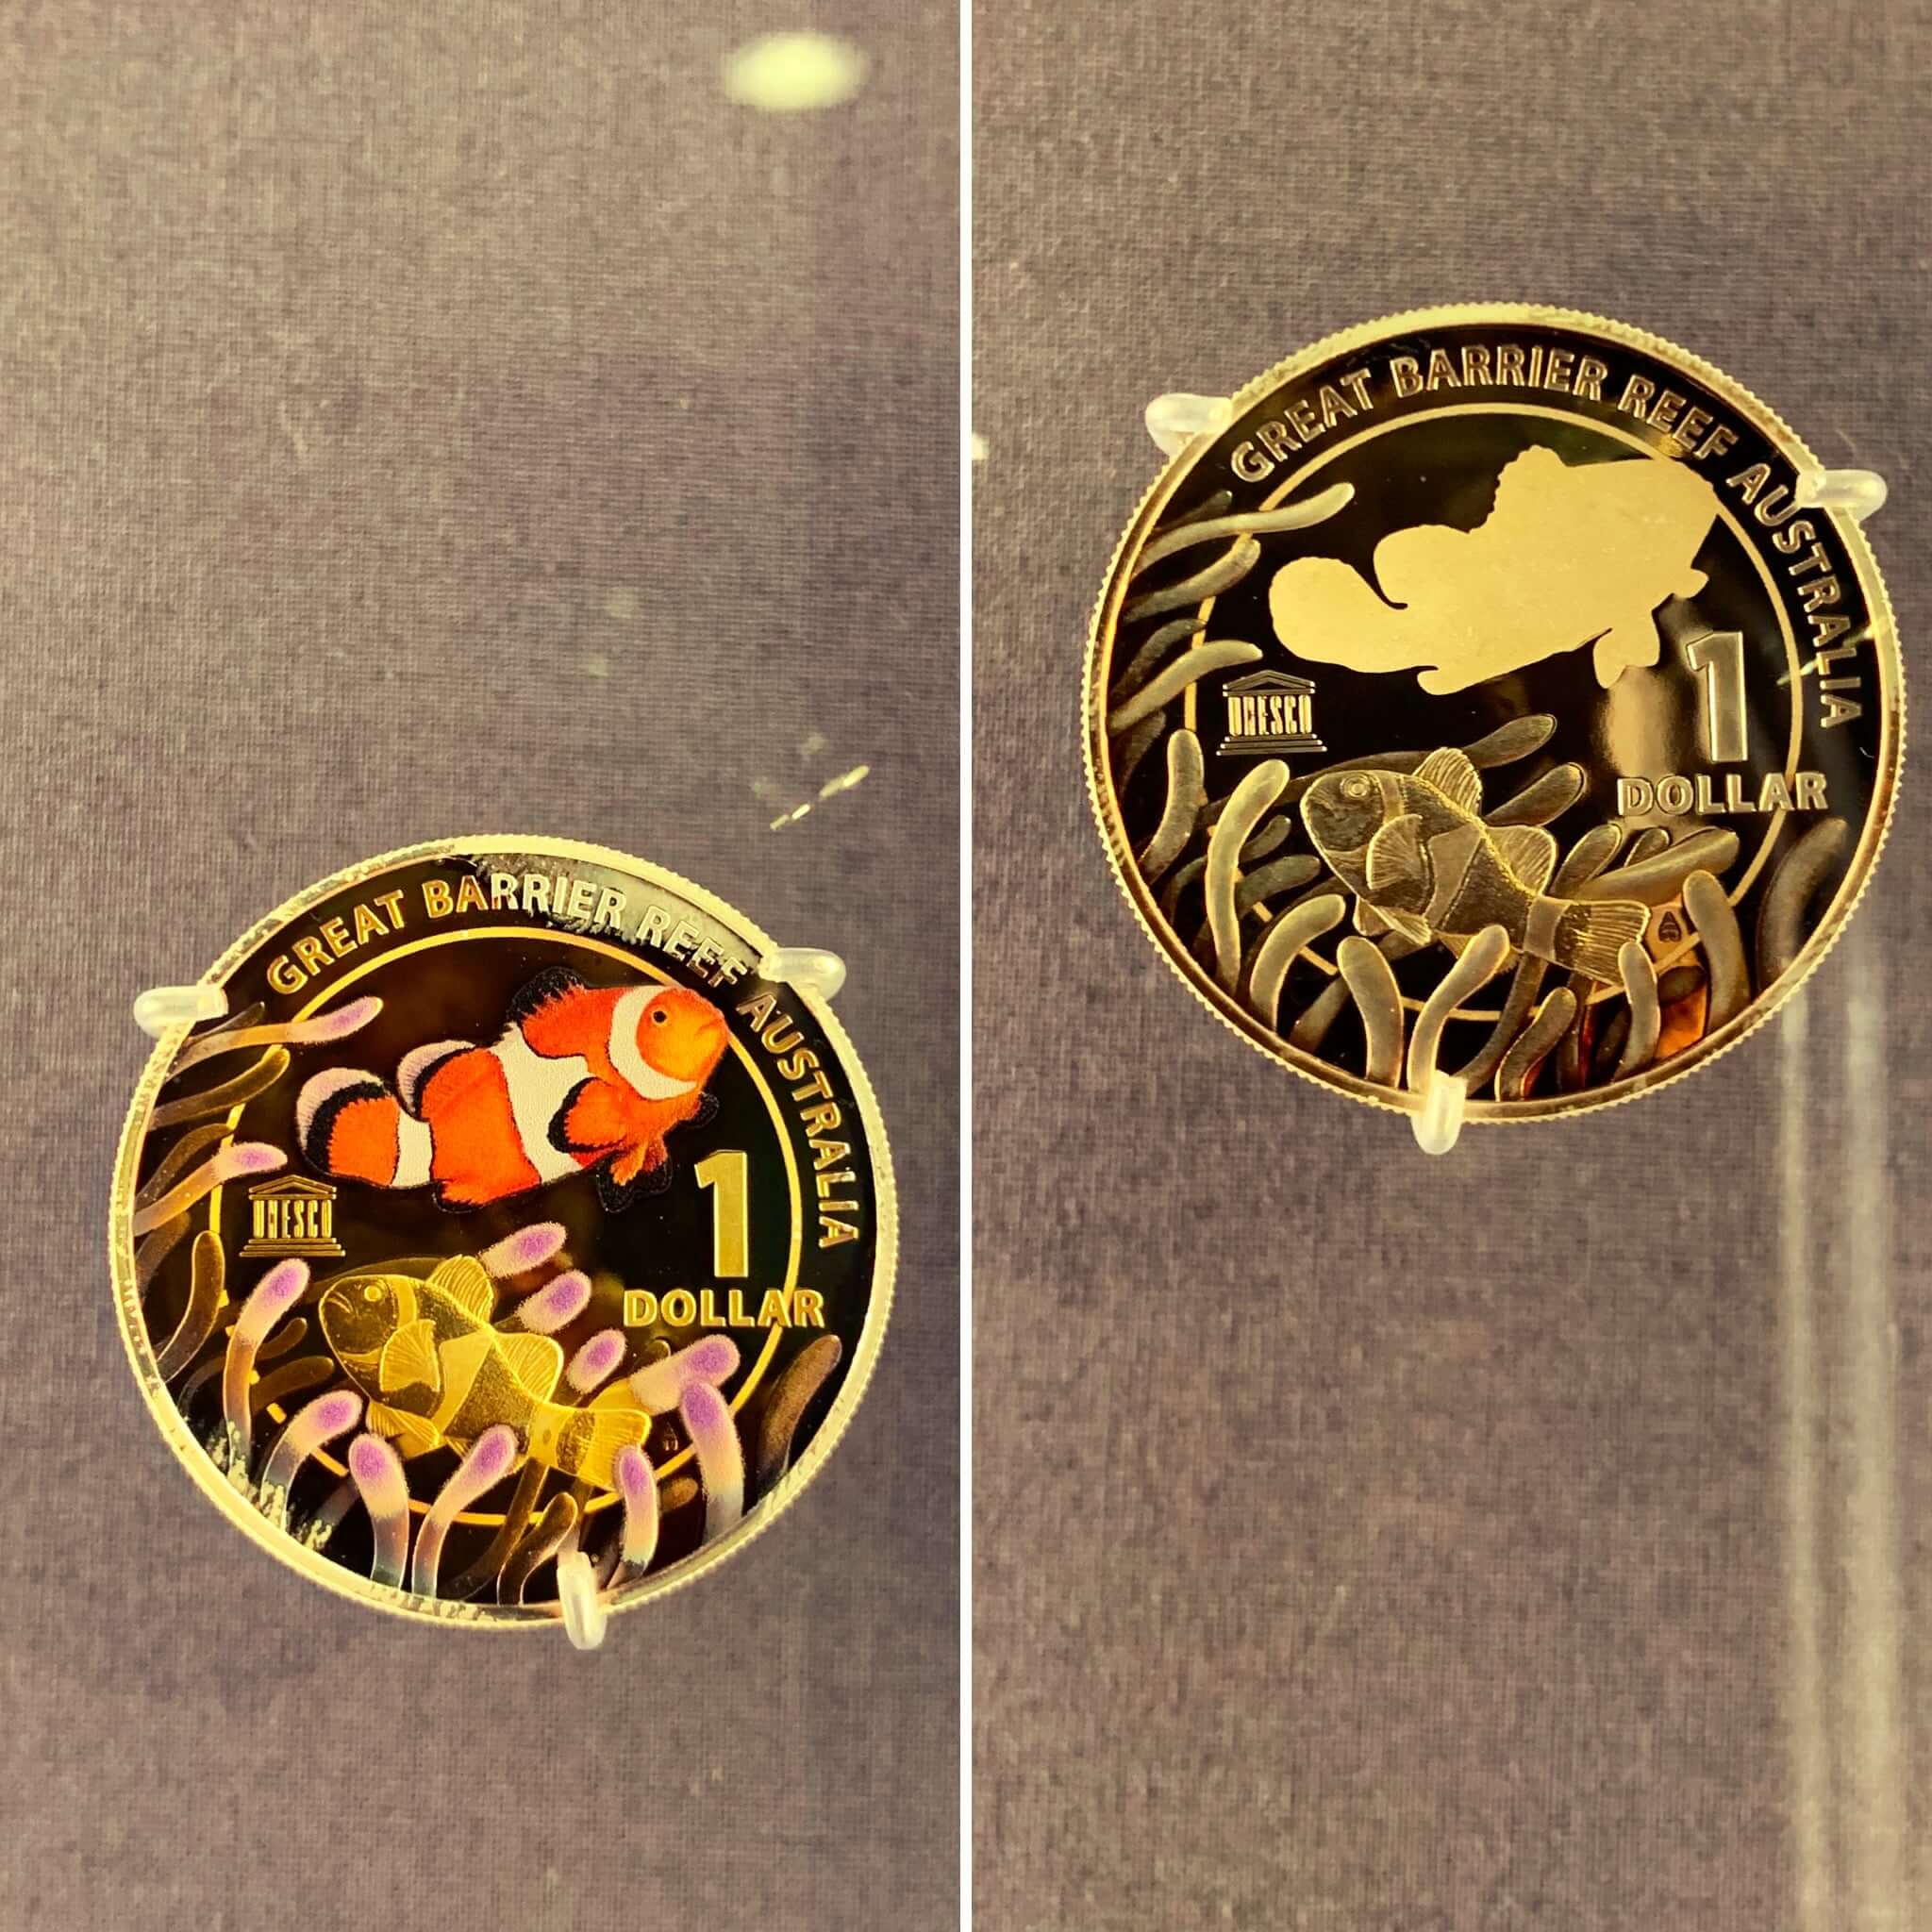 Commemorative coins for the Great Barrier Reef - On display at the Royal Australian Mint, Canberra